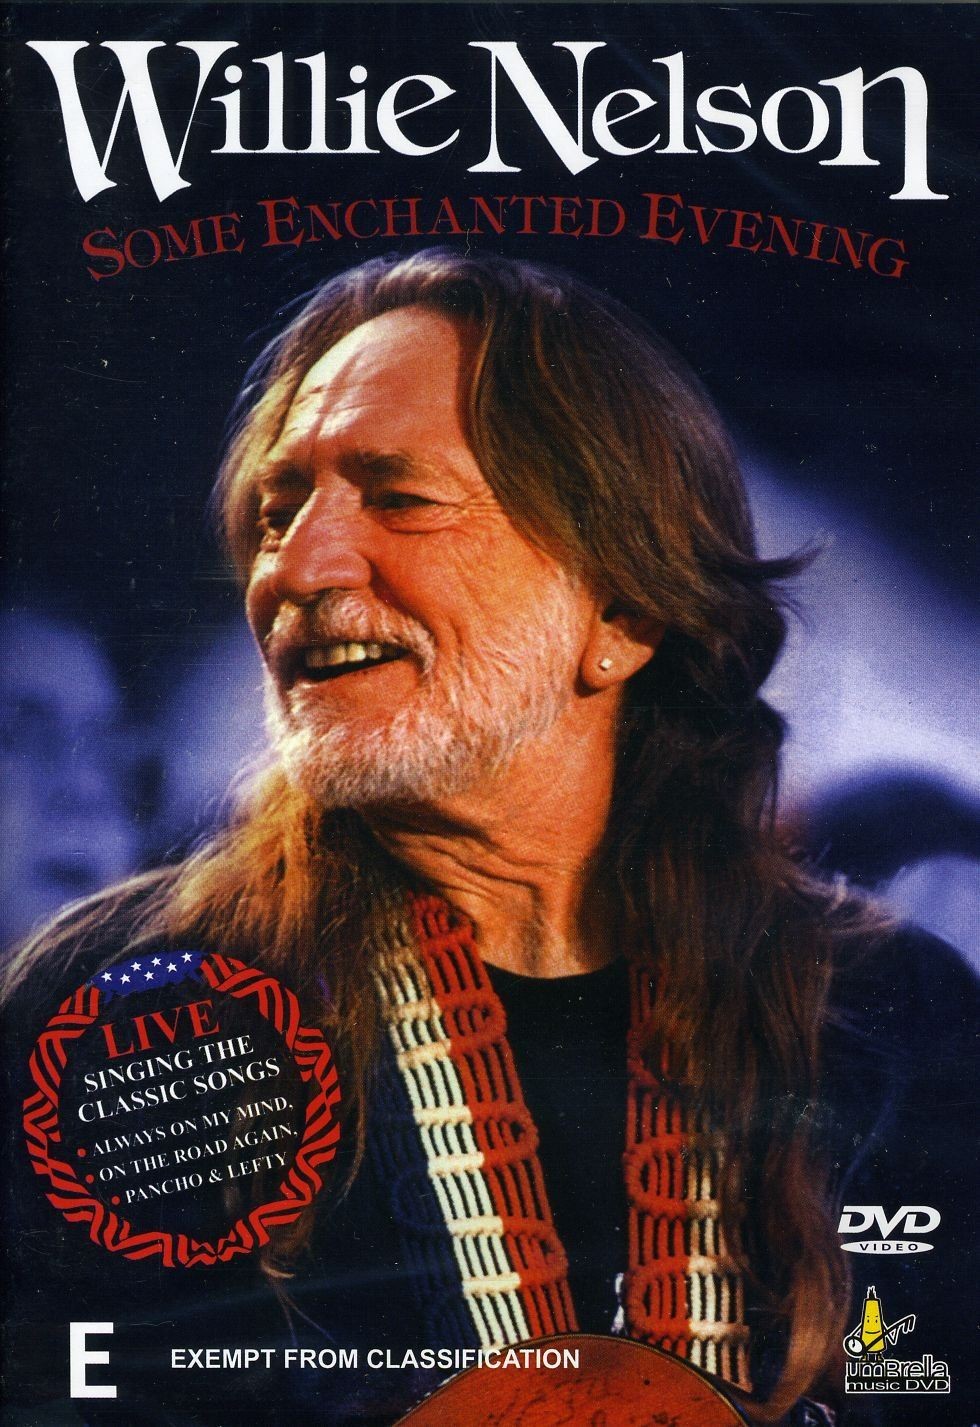 Willie Nelson Some Enchanted Evening Alemania Dvd Ad